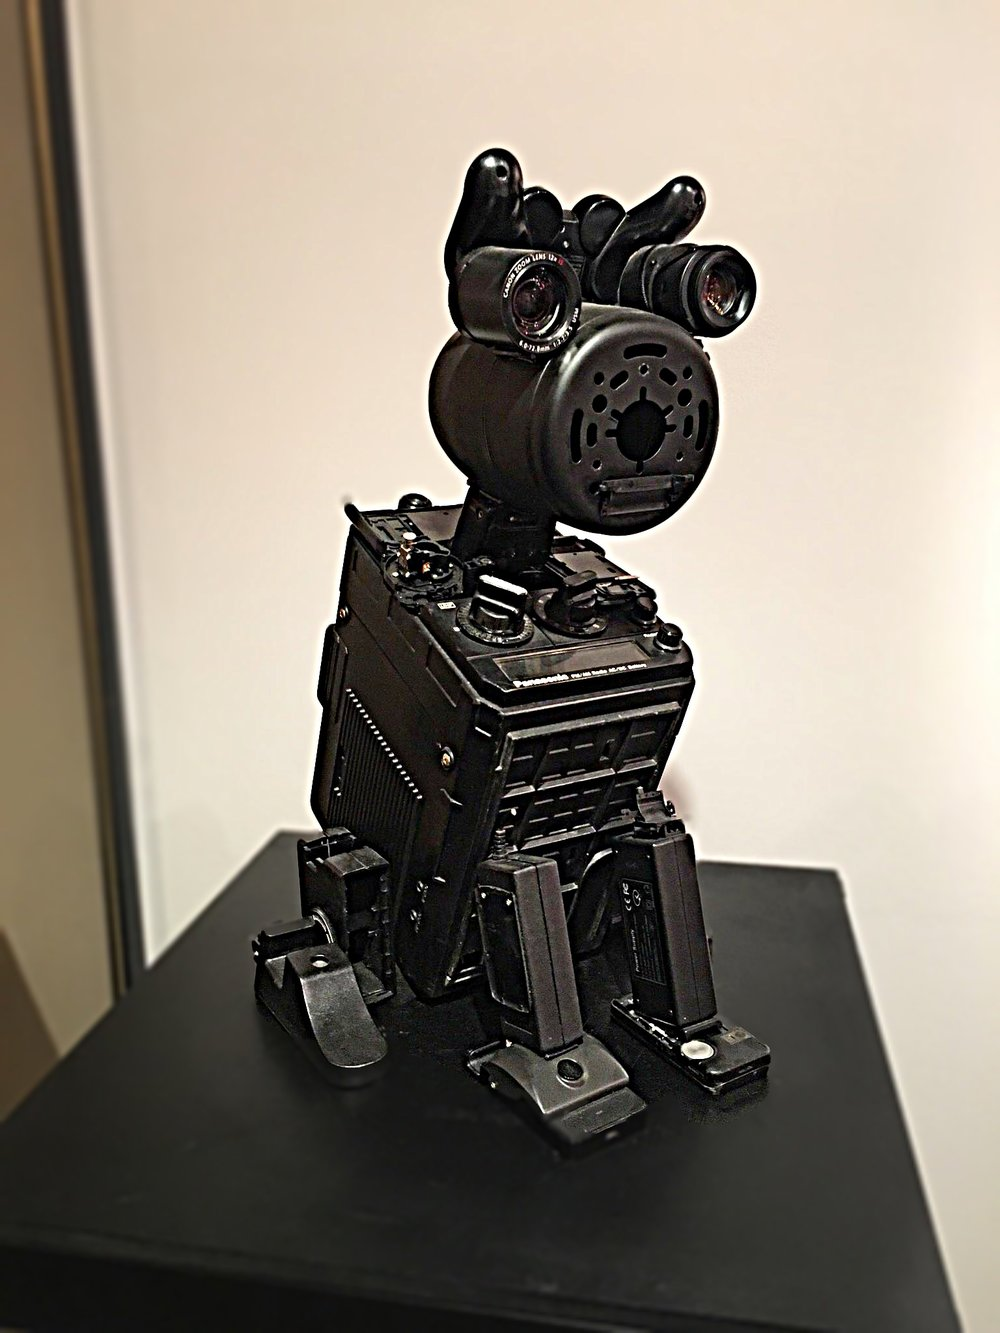 FORI,Black Dog, 2017. In his JUNK BIT series, FORI critiques society's excess consumption and wastefulness by repurposing discarded electronic waste and refastening them into robot creations.